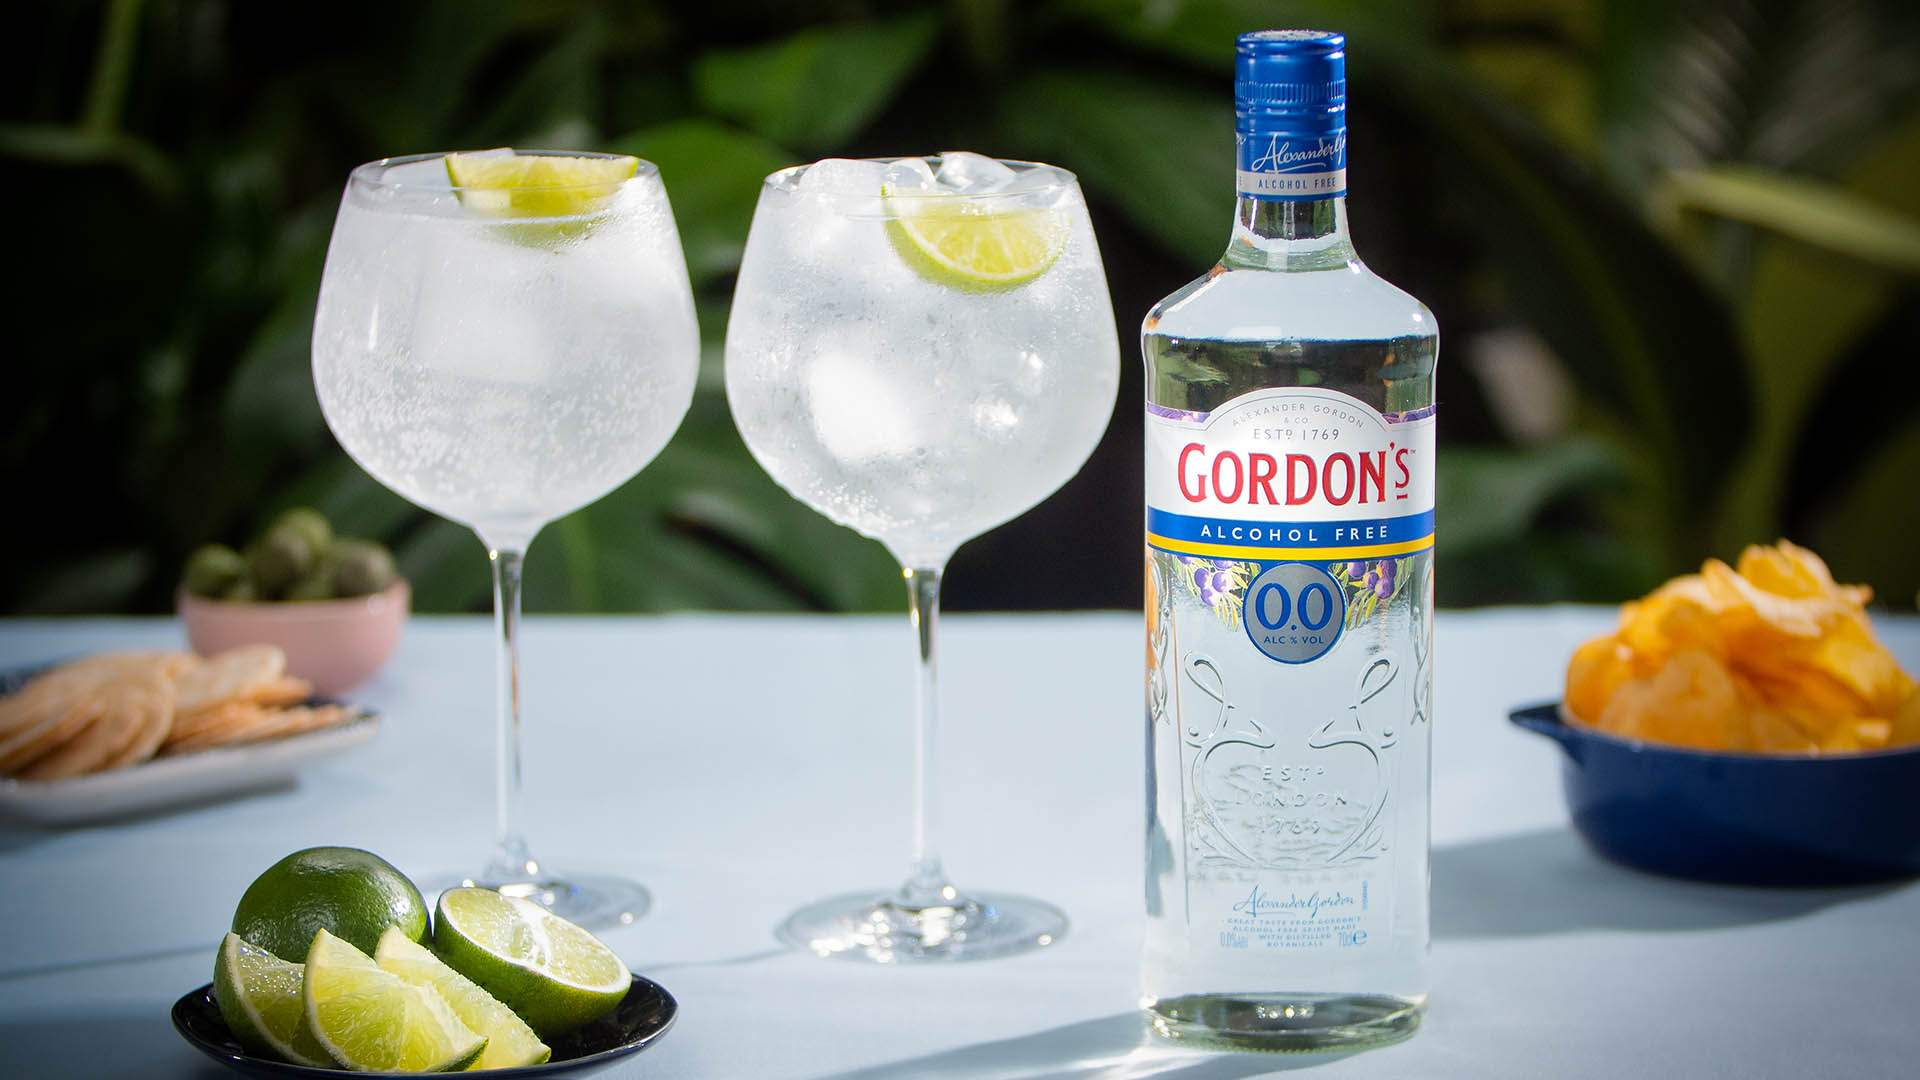 Gordon's Has Released Its Own Alcohol-Free Gin So You Can Sip G&Ts Without the Next-Day Headache